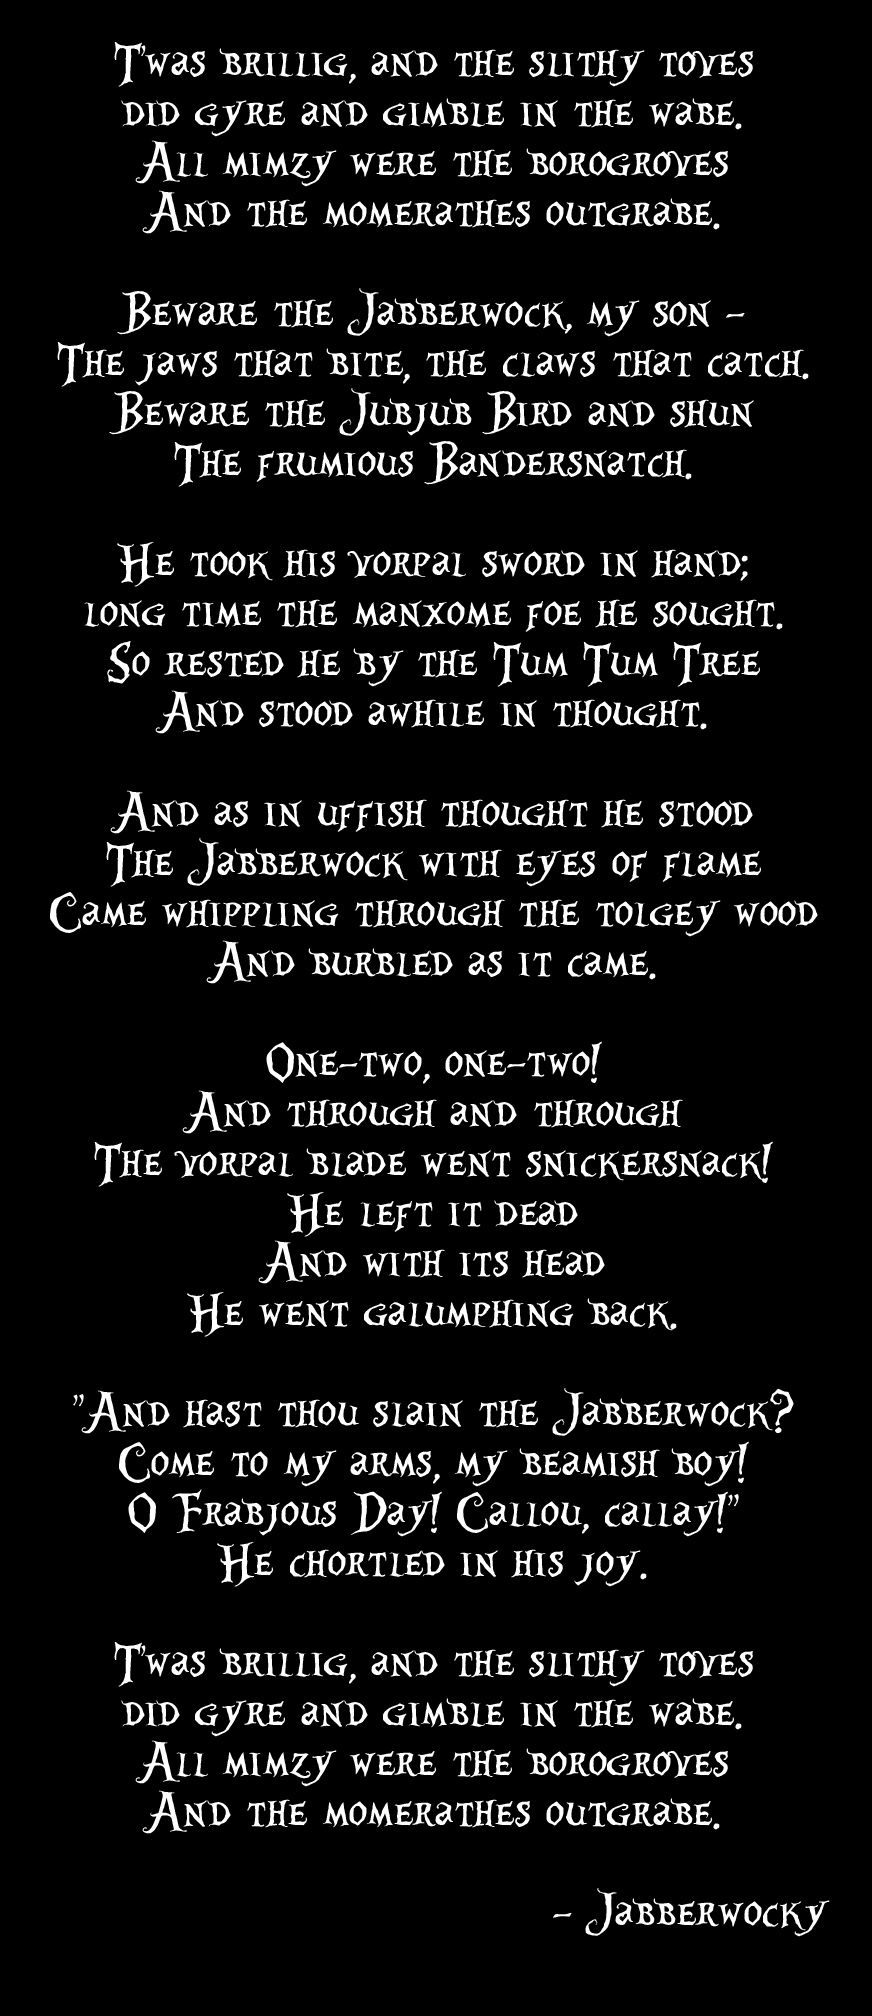 the full poem (which inspired part of the Tim Burton plot) in the ...